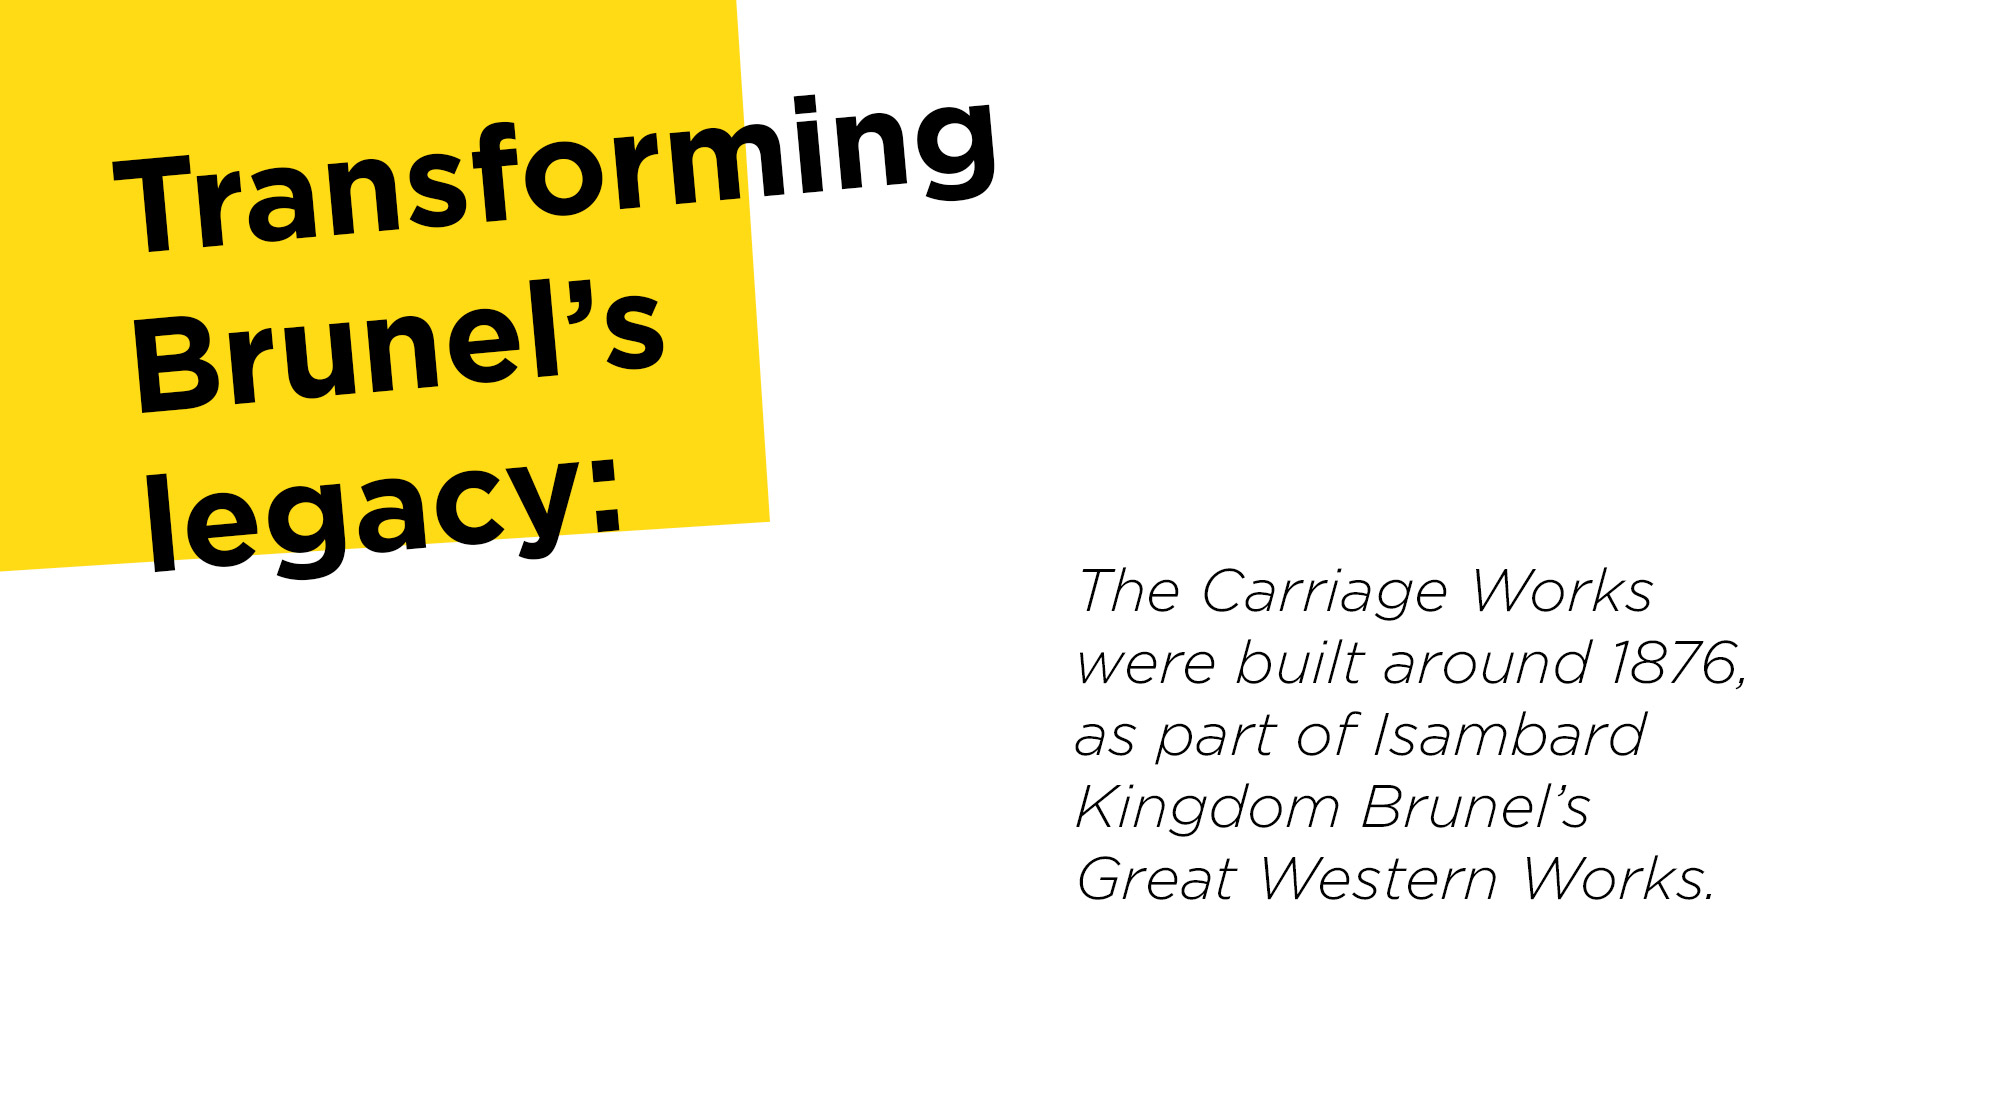 Transforming Brunel's legacy